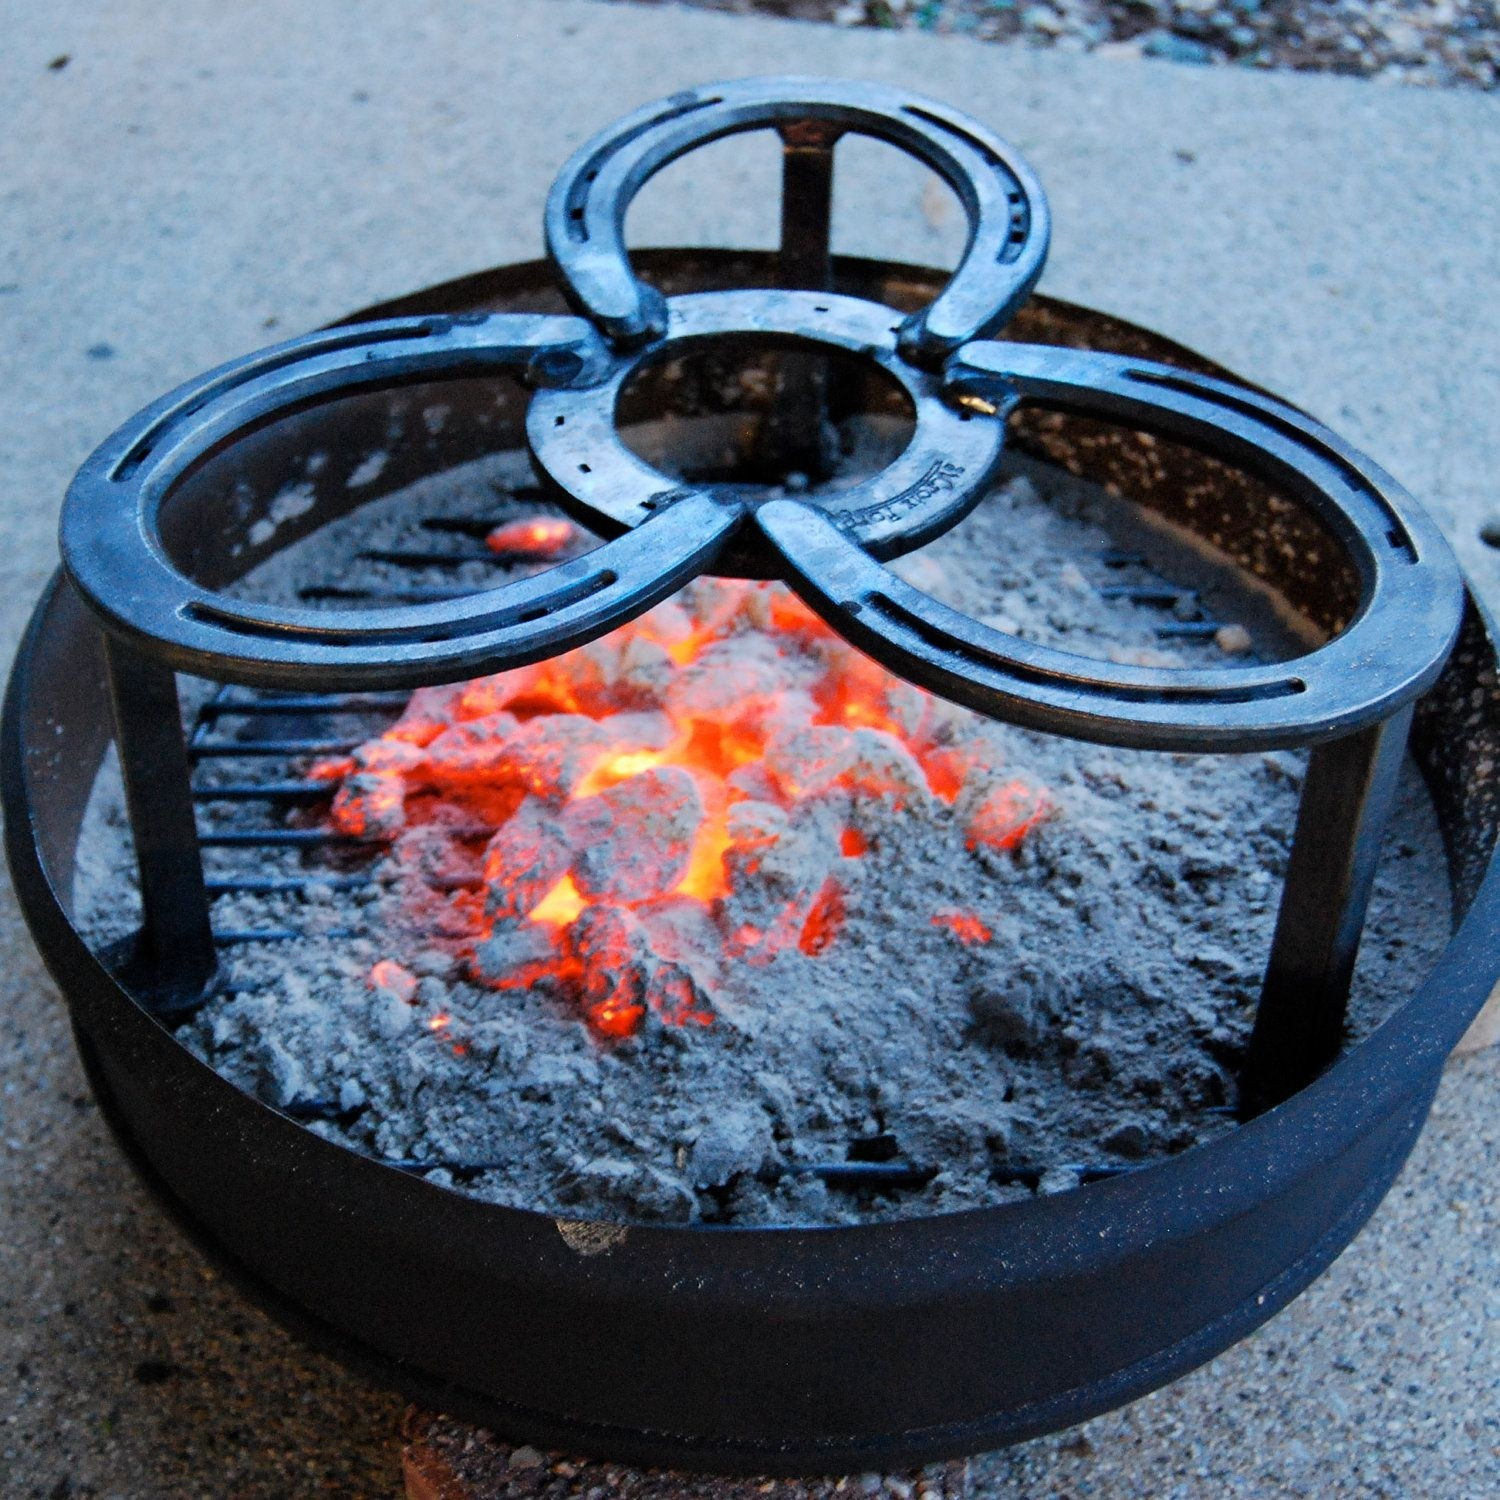 Camping trivet stand for dutch oven